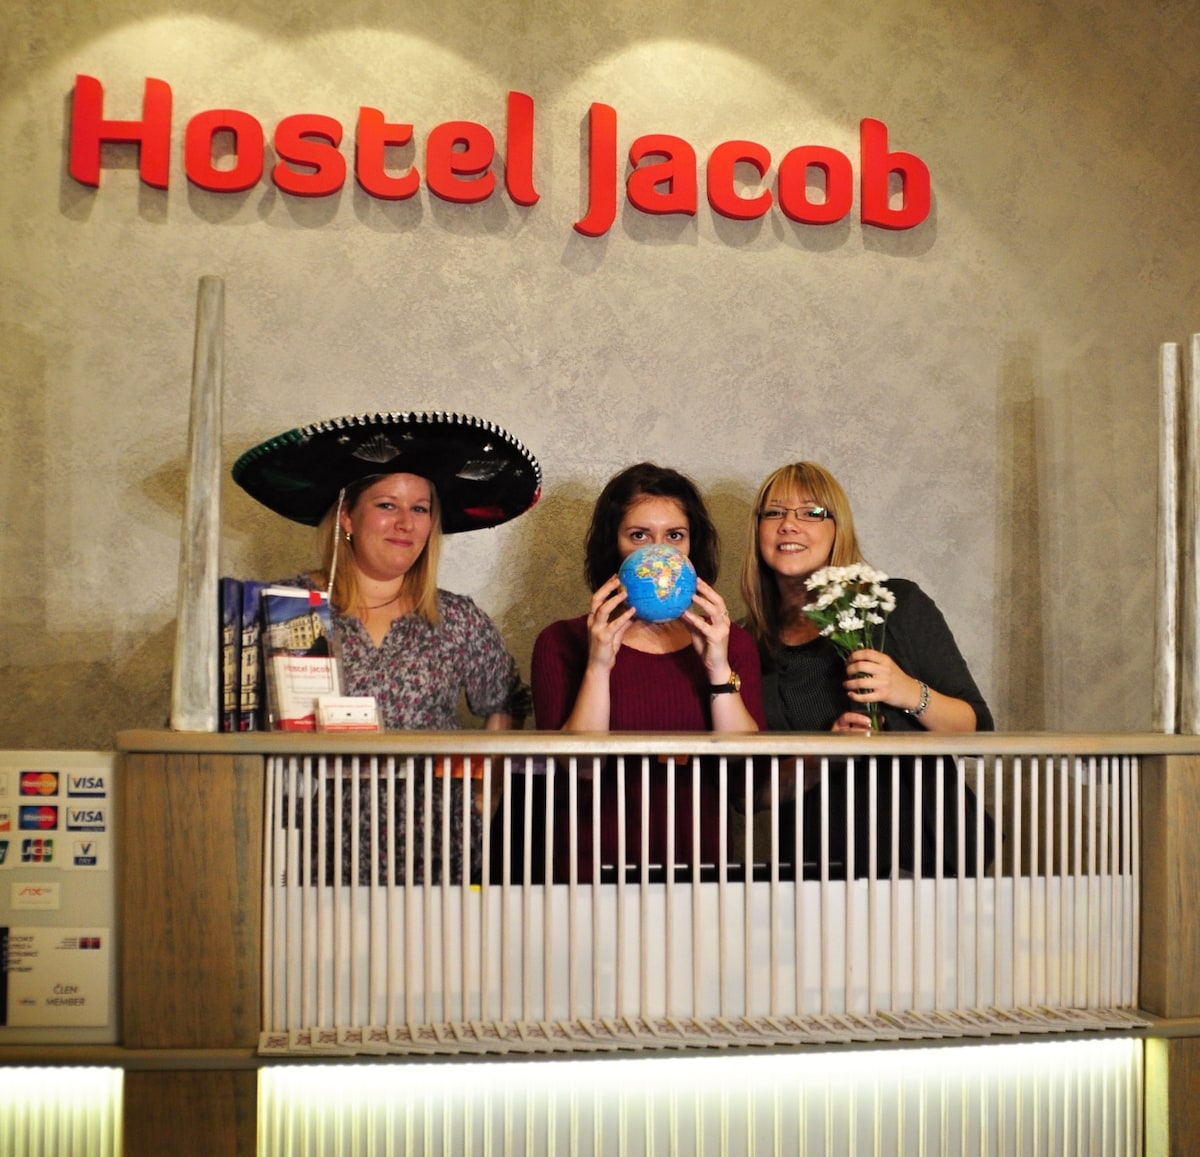 Hostel Jacob From Brno, Czech Republic